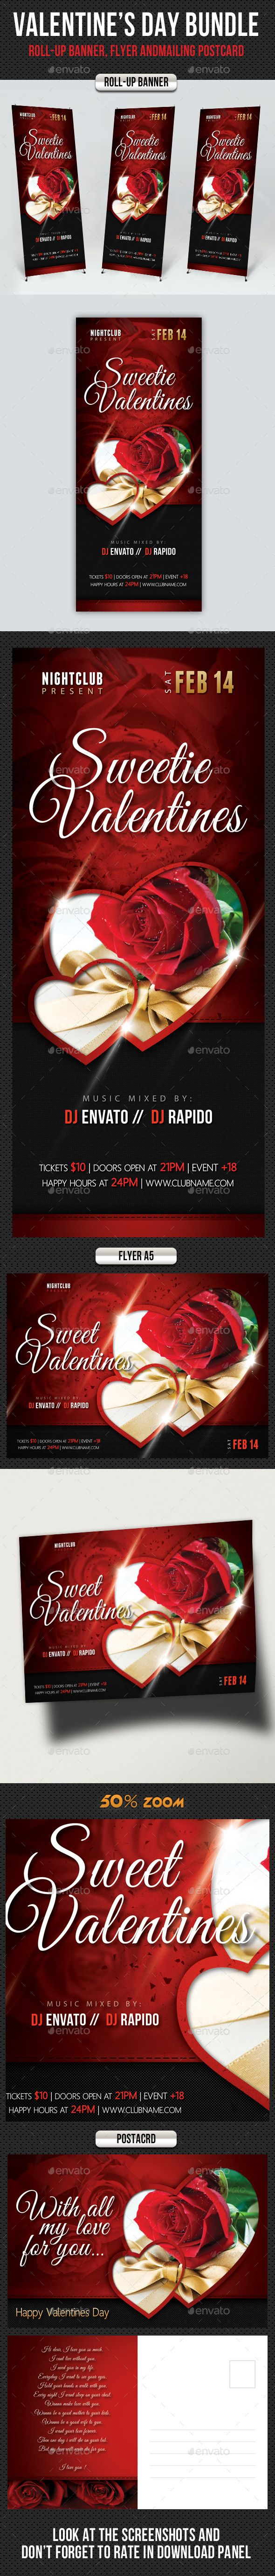 3 High Impact Valentines Day Roll-Up Banner, Flyer and Mailer Postcard Templates, perfect for Valentines Day Event advertisement! Save your time and money! Pack included:  3 Template Layouts 4 PSD files Fully layered and editable Easy to Customise Print Ready Smart object placeholders Safe Guides, Trims, Bleeds Preview images not in